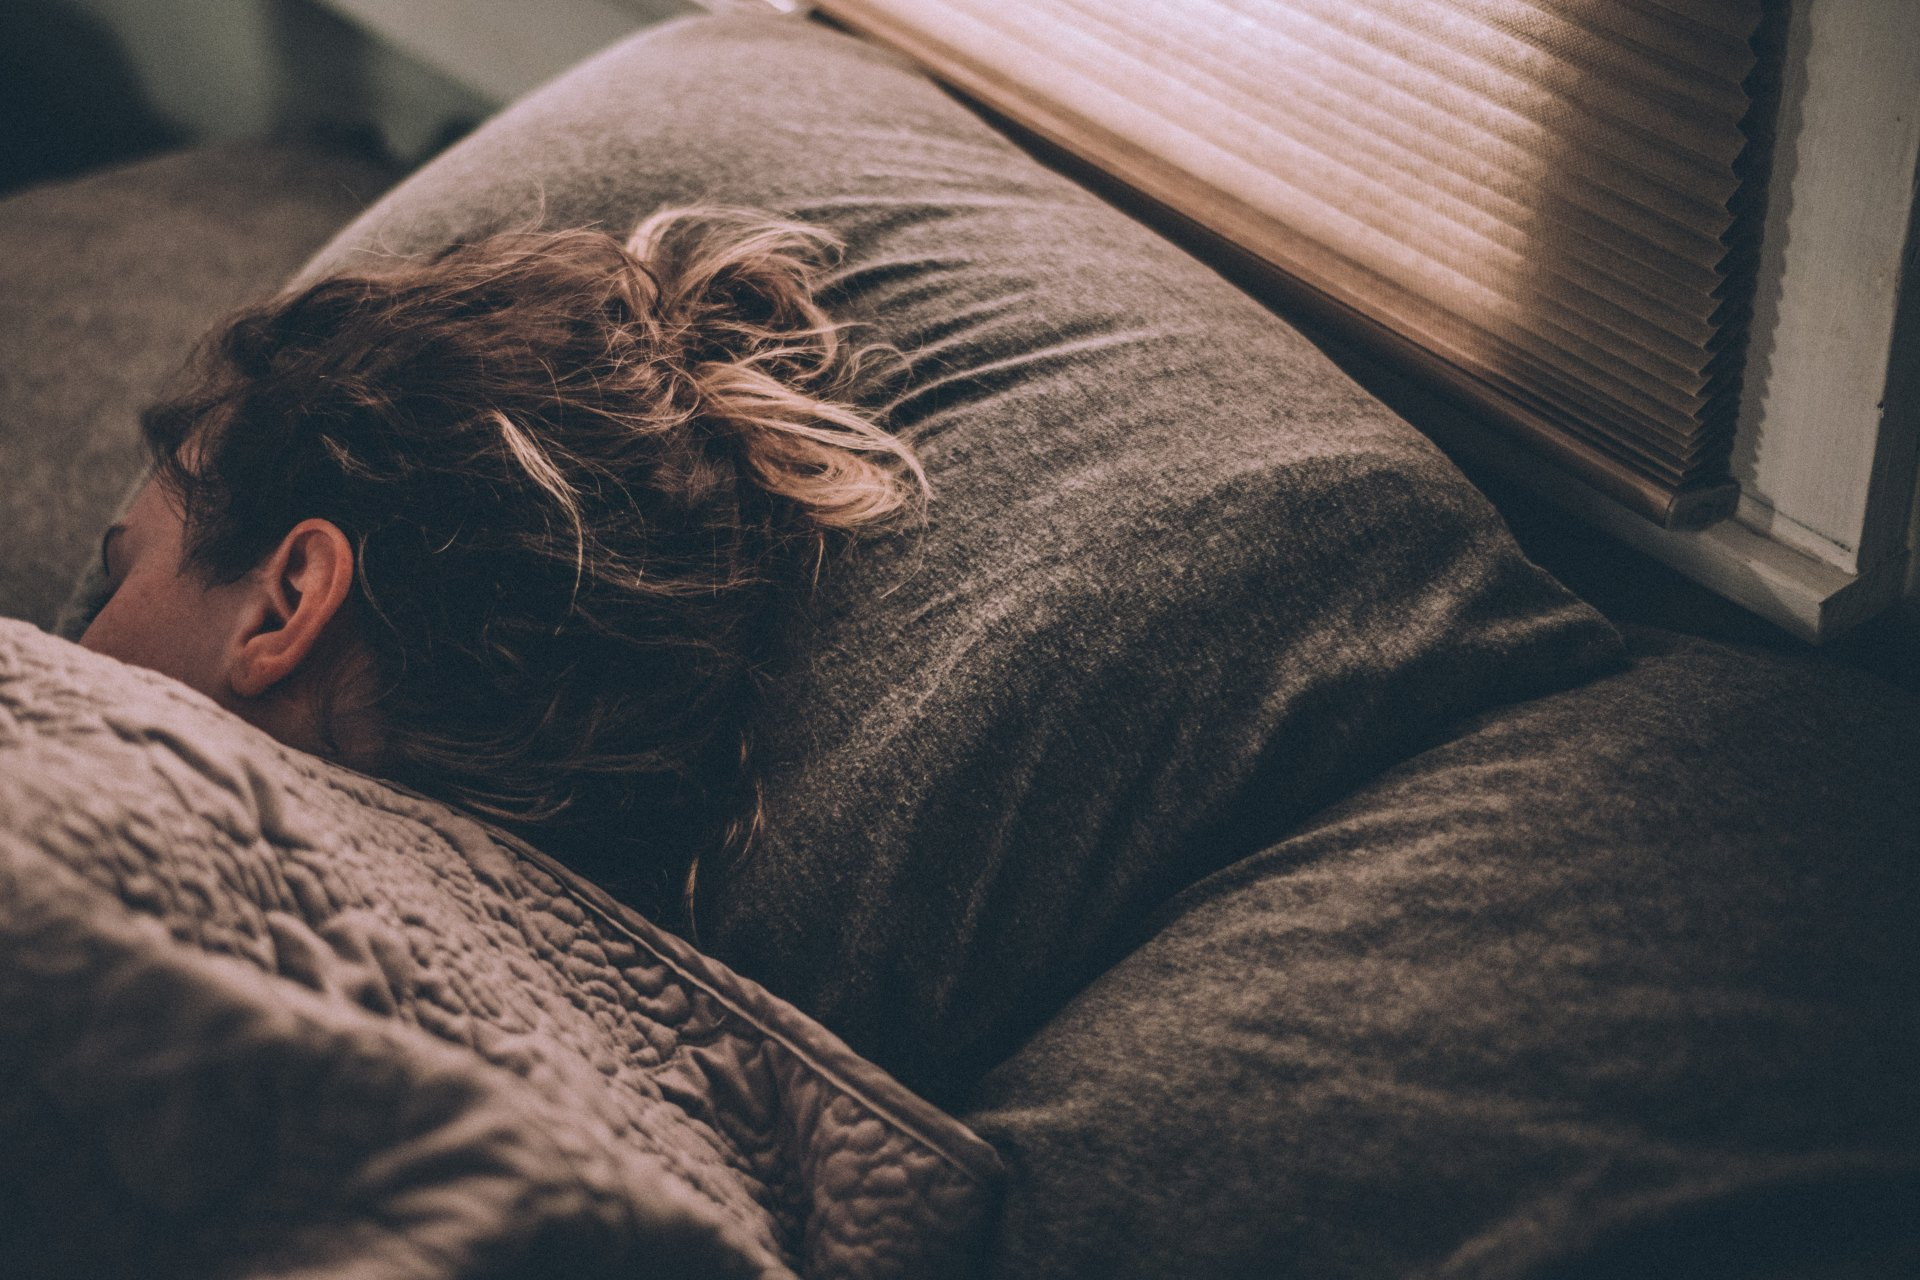 50 Couples On The Creepiest Thing Their Sleep Talking Spouse Said In The Darkness Of The Night